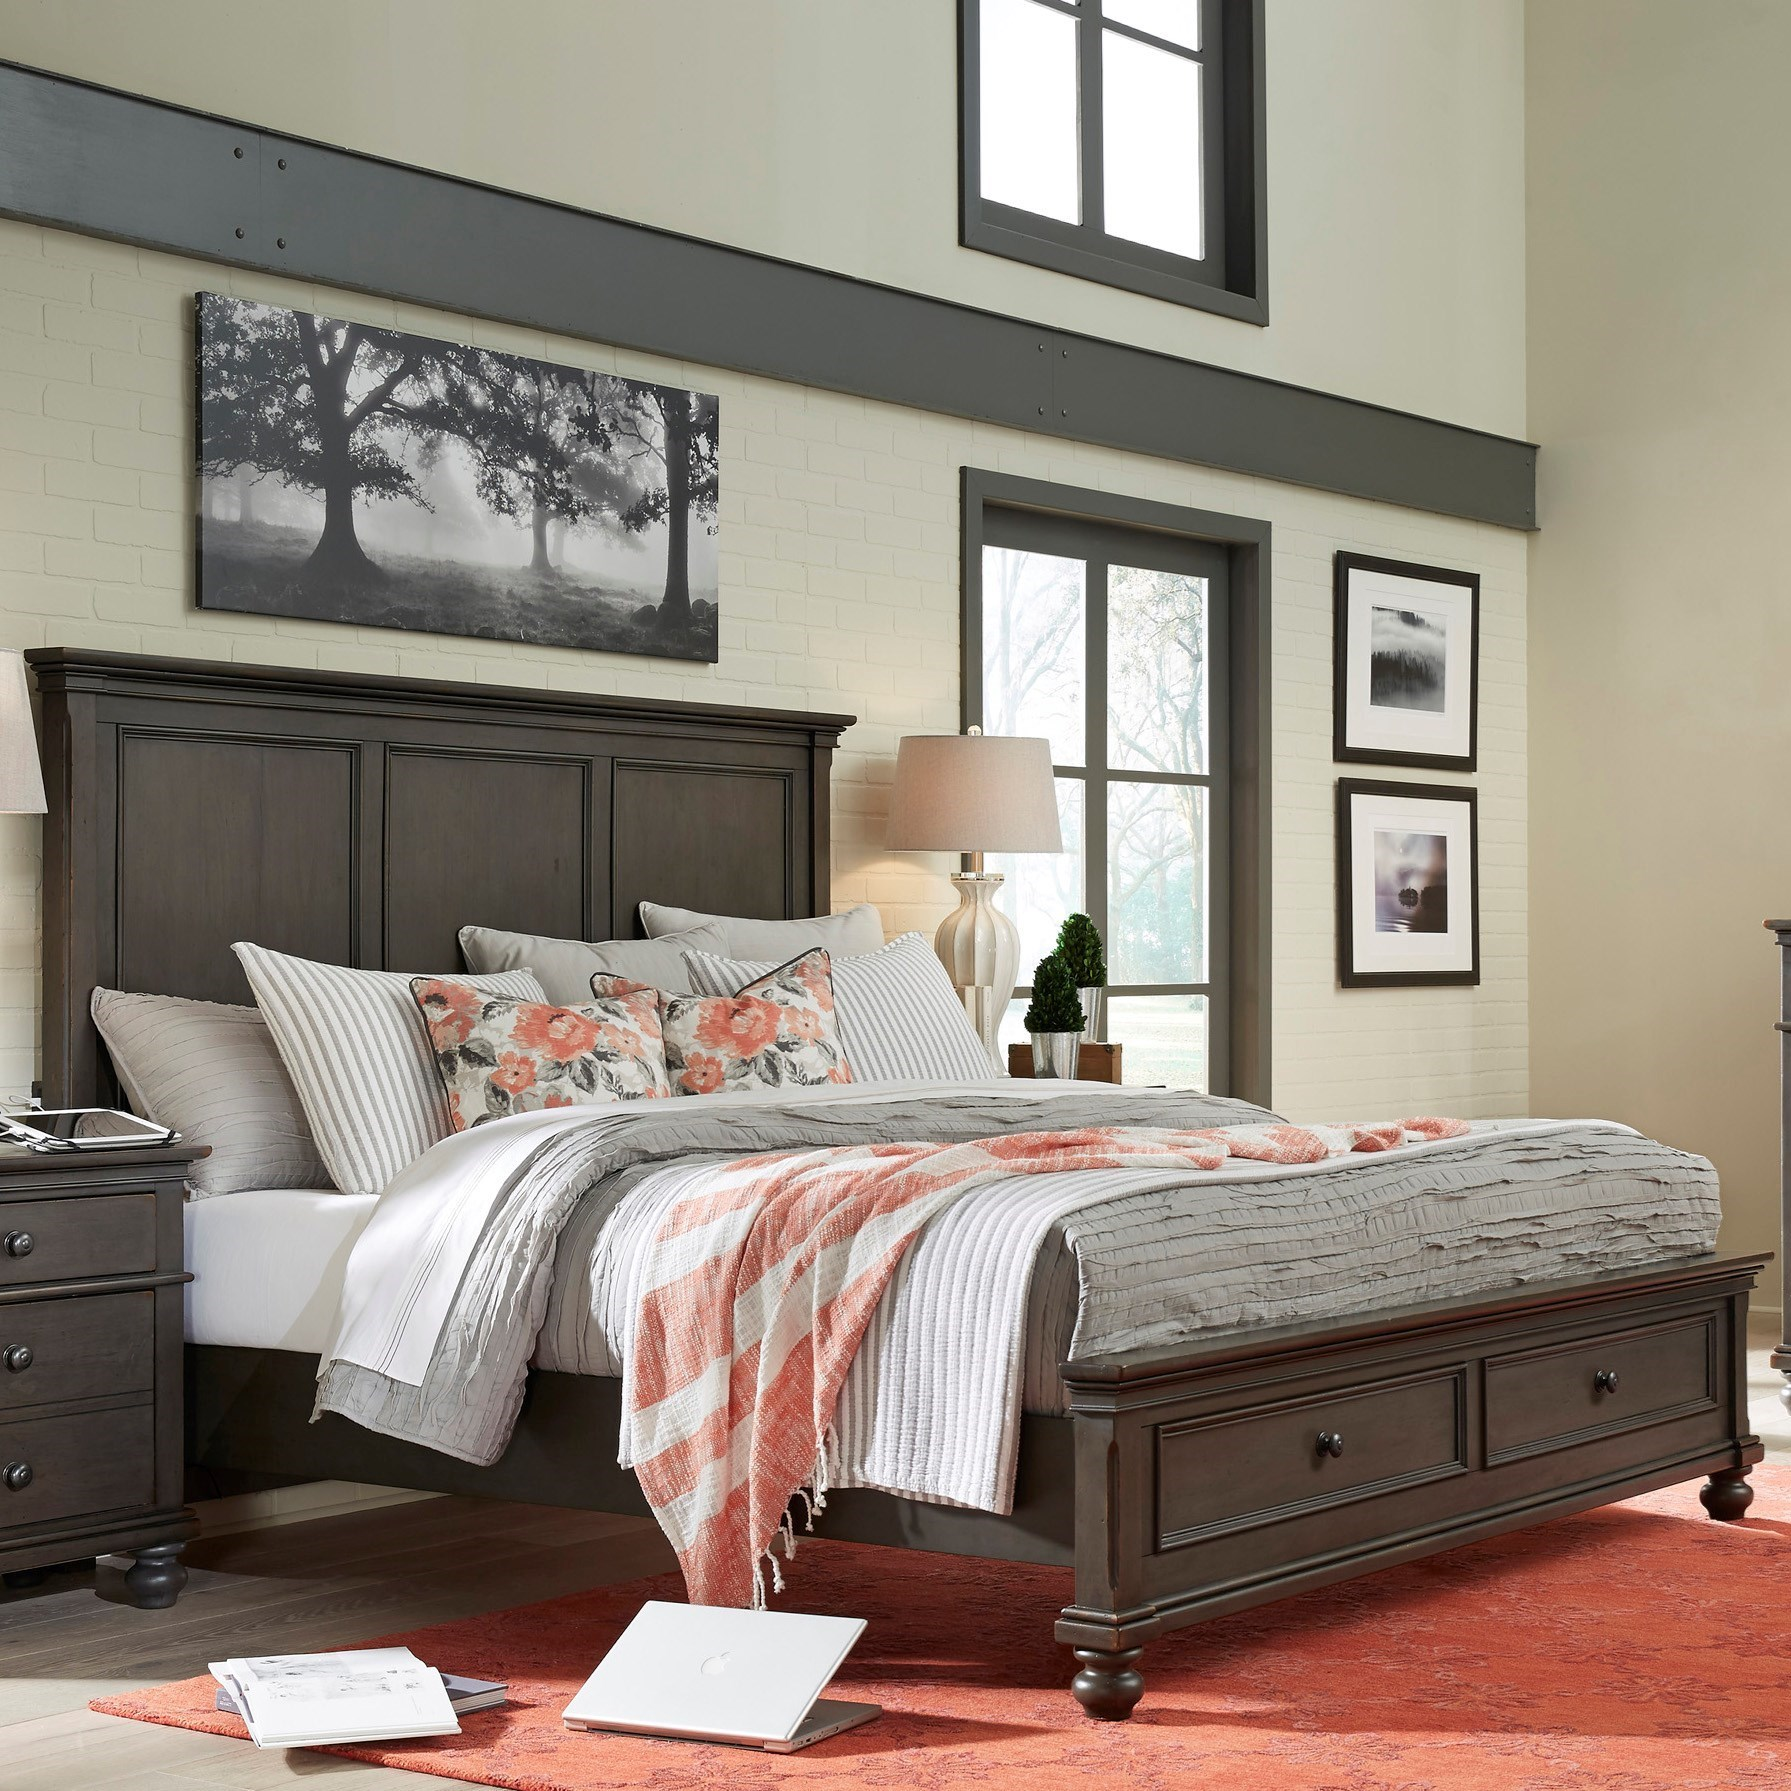 Aspenhome Oxford Cal King Storage Bed - Item Number: I07-415+407D+410-PEP